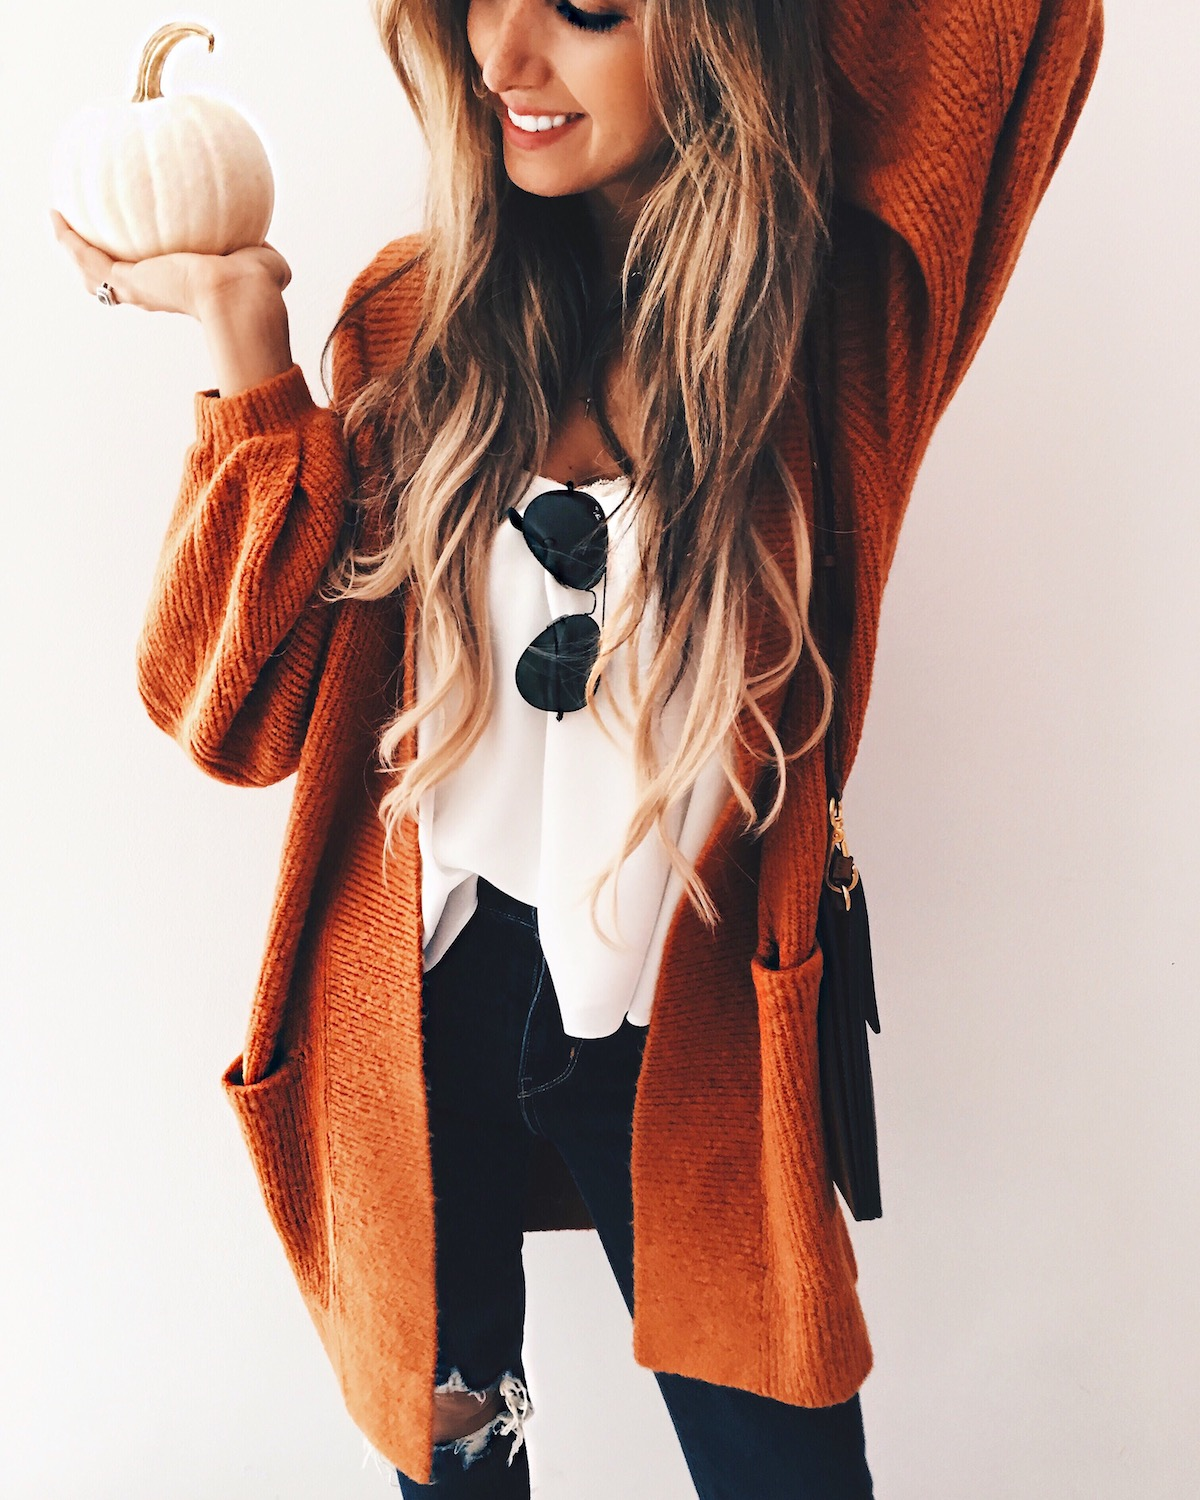 sweater weather outfit ideas